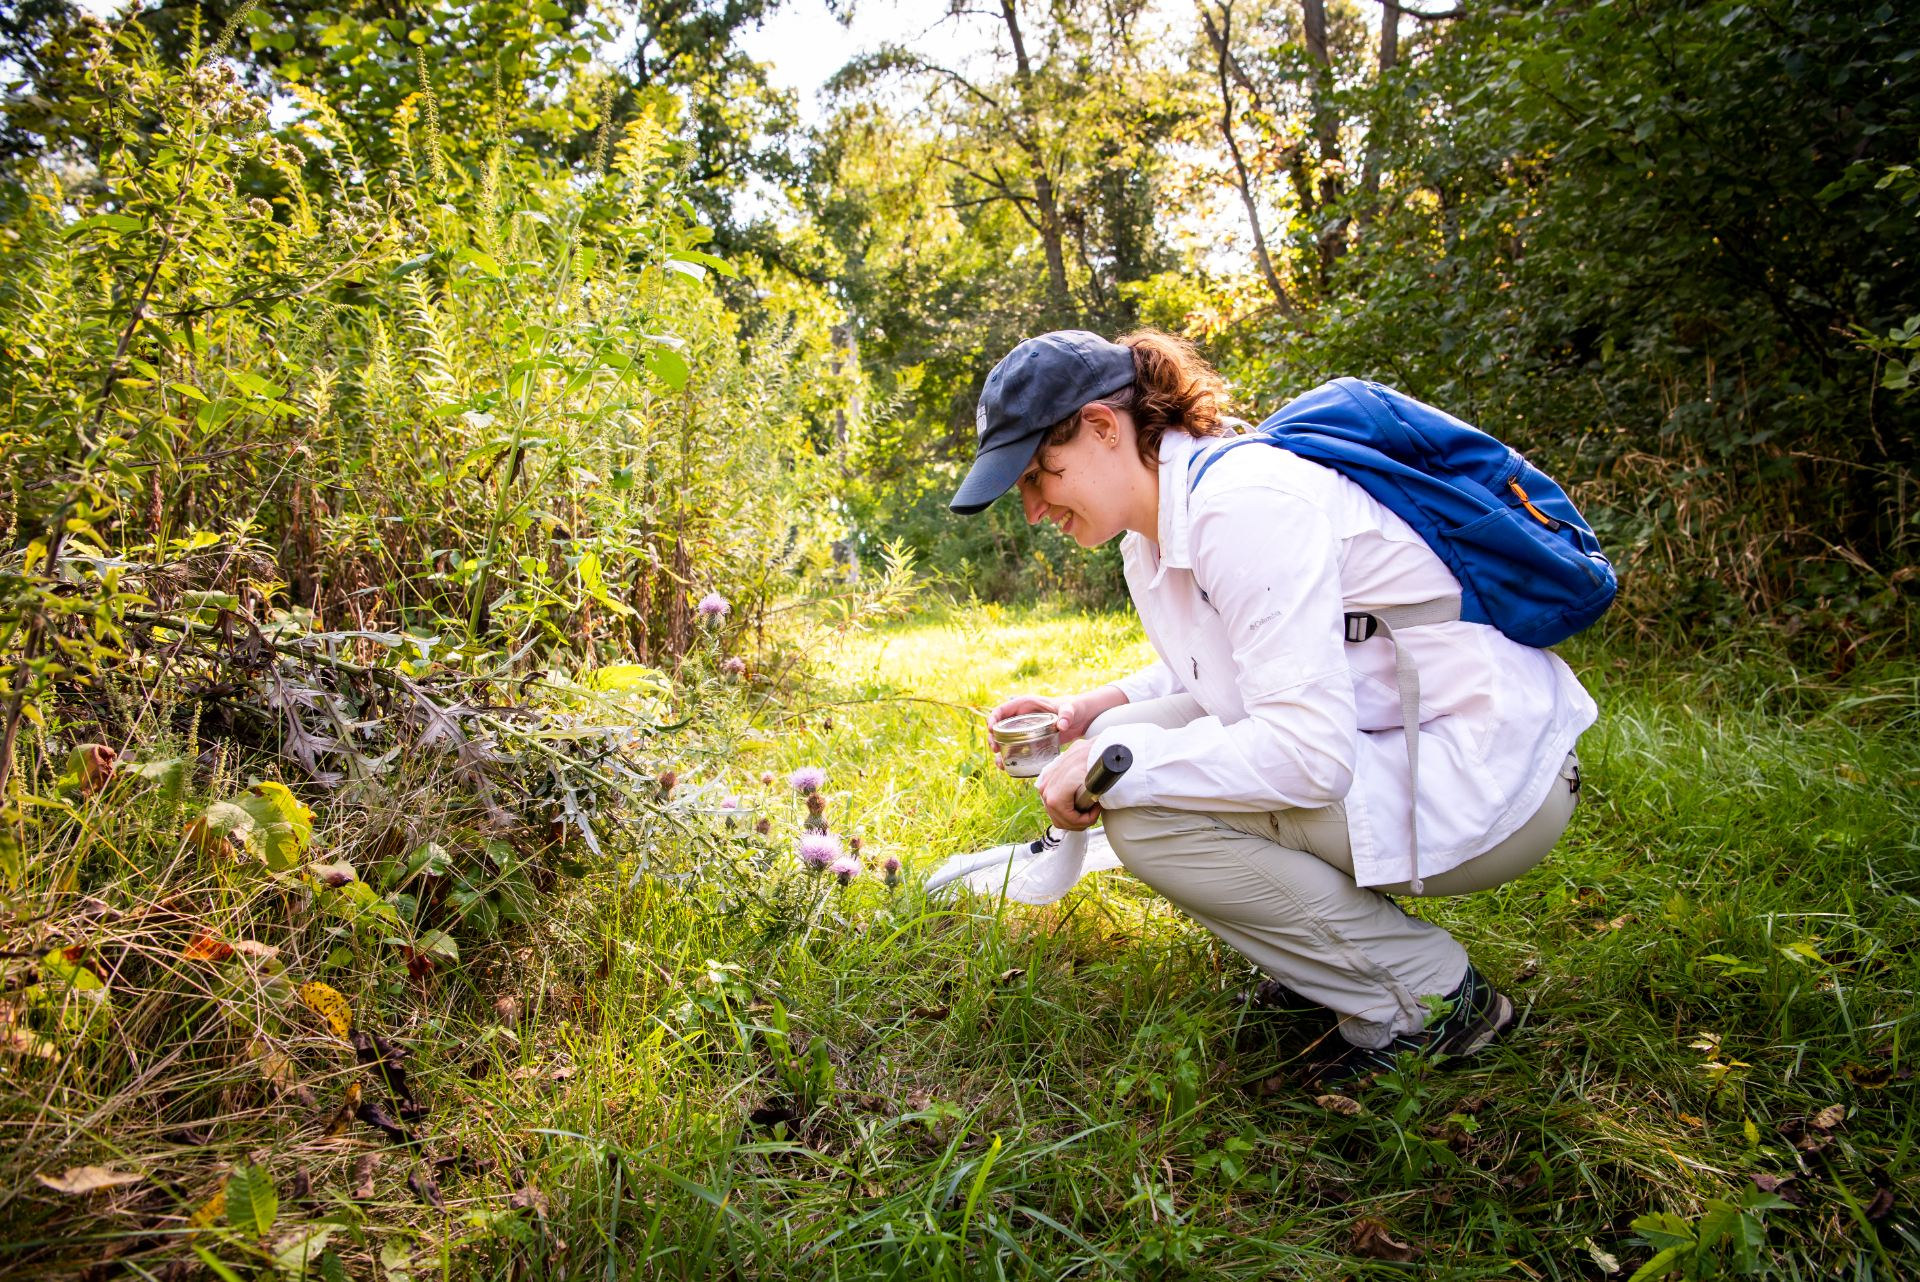 Third-year graduate student Elyse McCormick takes a field trip to Parklands' Lexington Preserve to study insects in Distinguished Professor Dr. Steven Juliano's Entomology course.